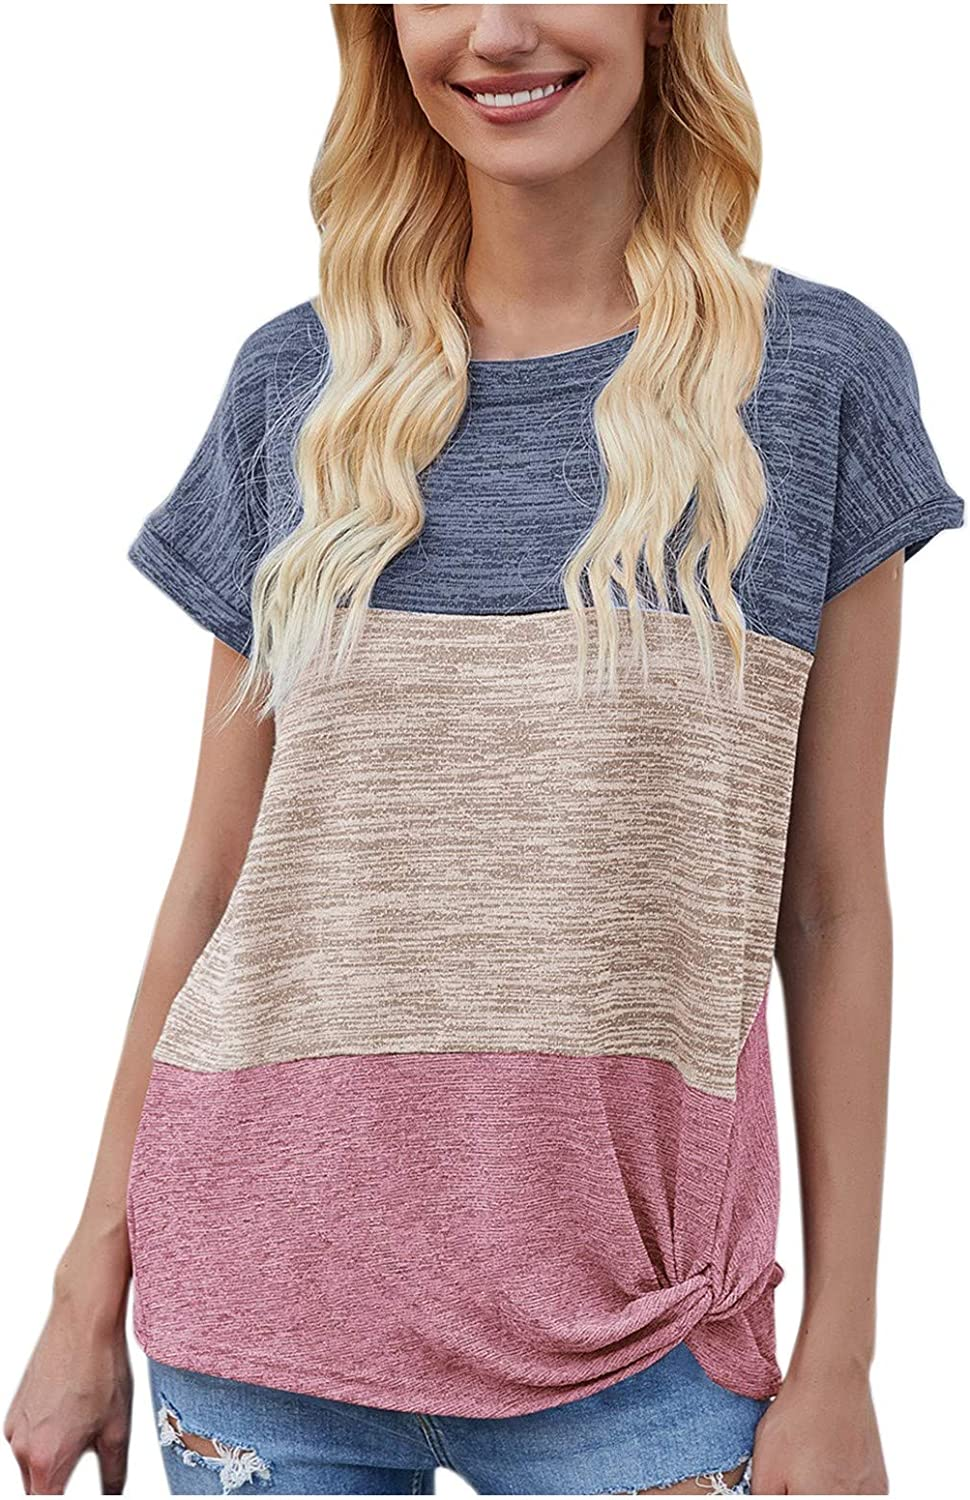 Aukbays Womens T-Shirts Summer Woman Tops Sexy,Women's Casual Kink Splicing Loose O-Neck Short Sleeve Top Basic Tee Tops